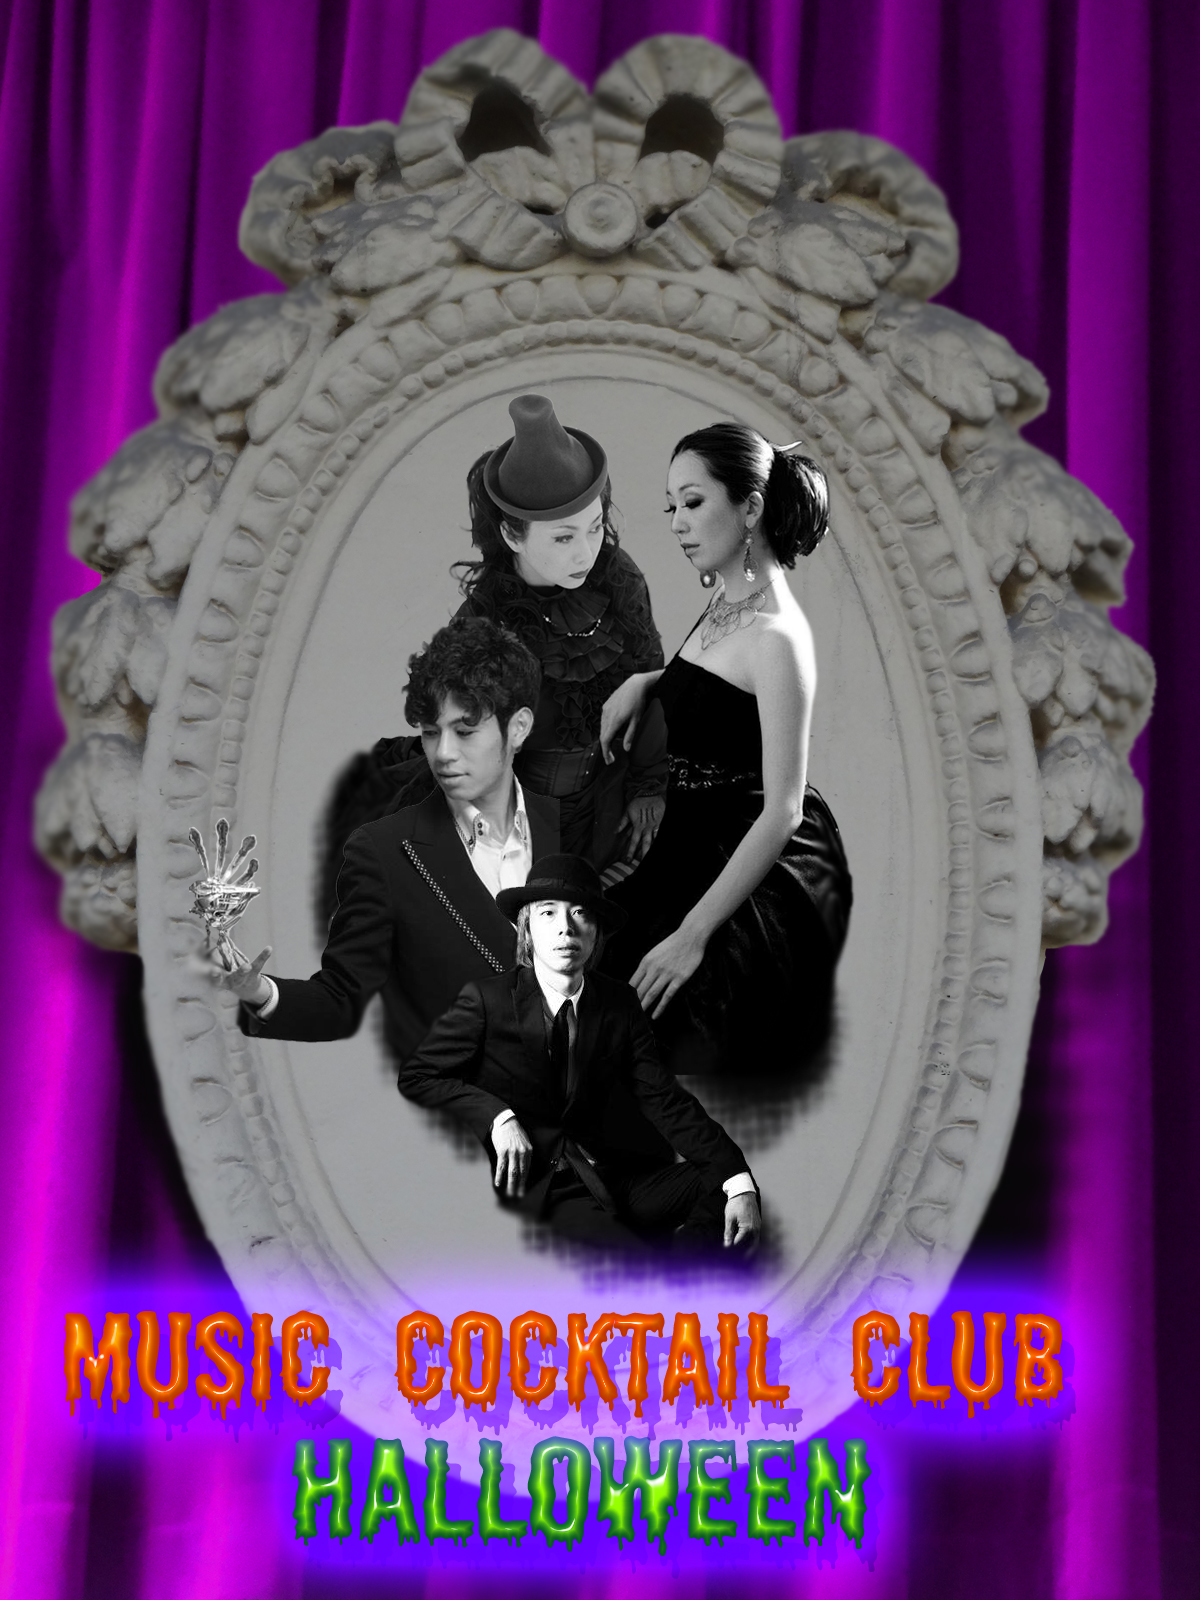 MUSIC COCKTAIL CLUB レシピ・ハロウィン